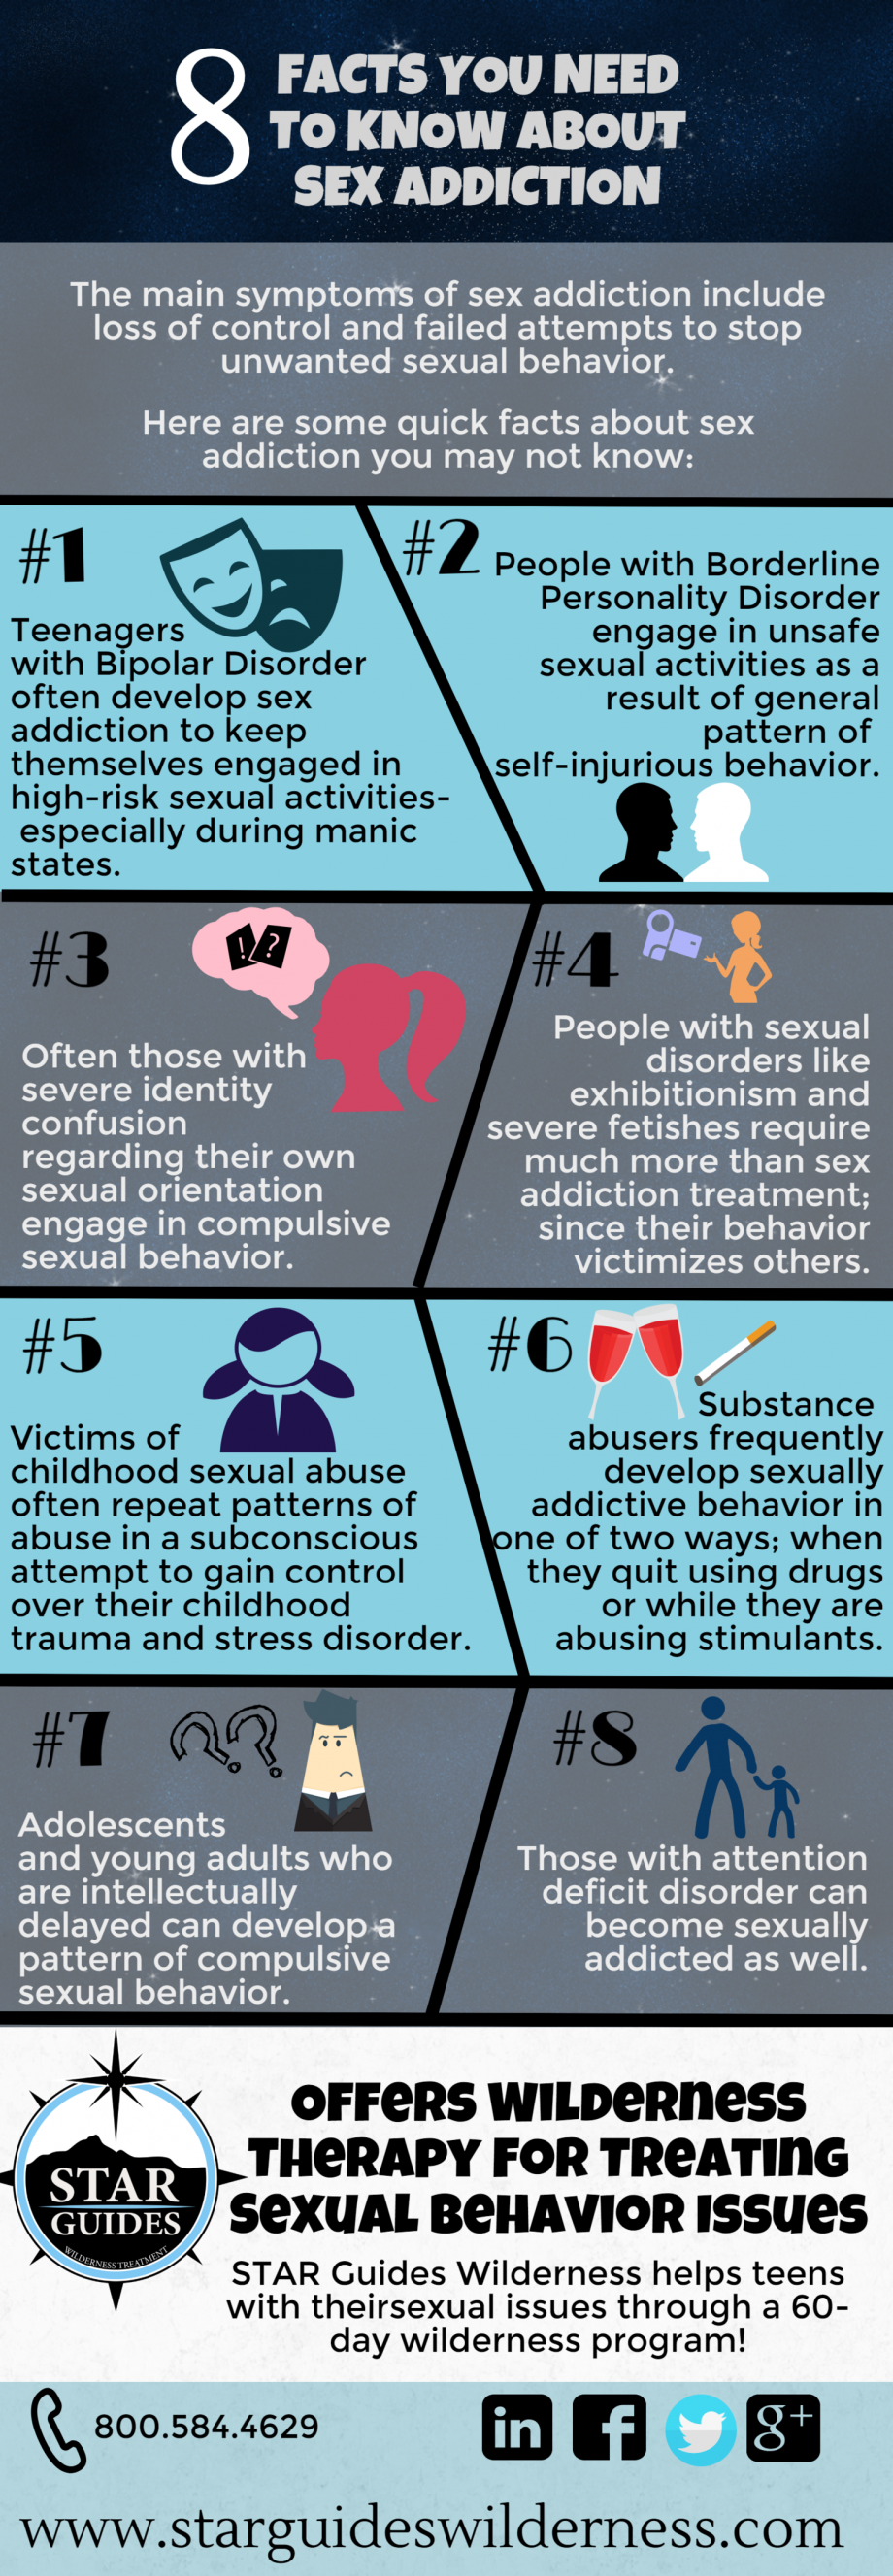 STAR Guides Wilderness - 8 facts you need to know about sex addiction infographic